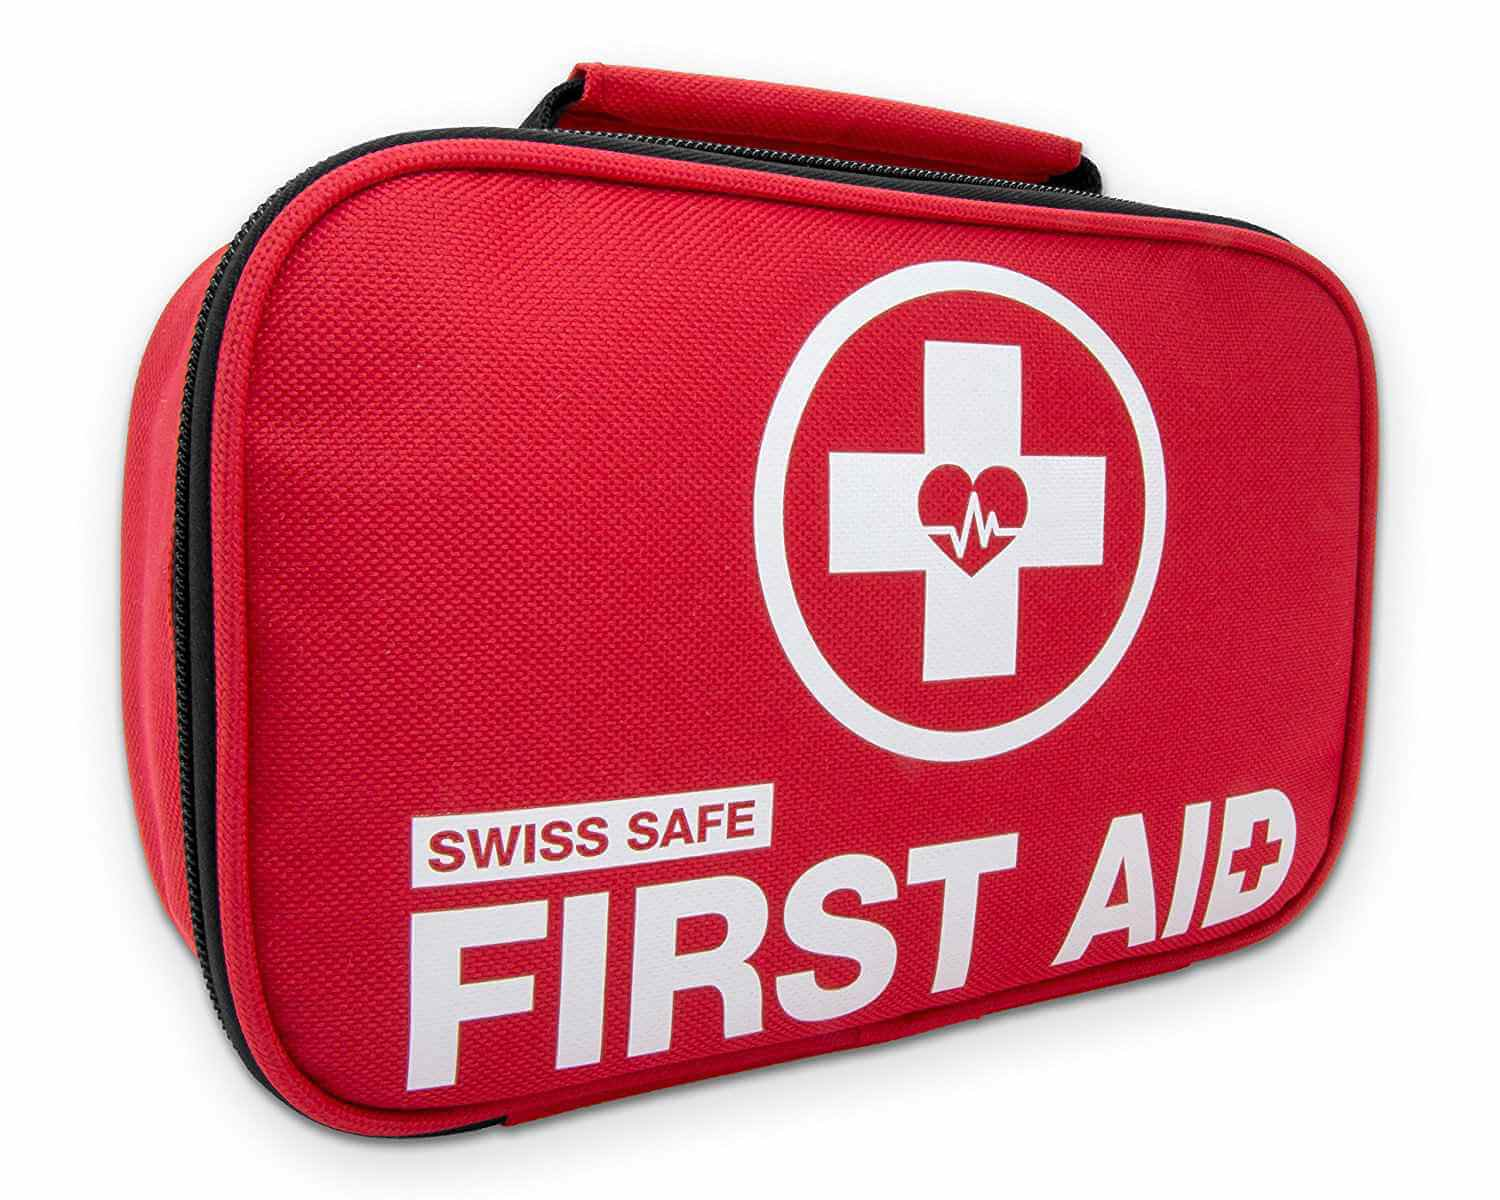 Packing a practical first aid Kit for travelers: Safety First!